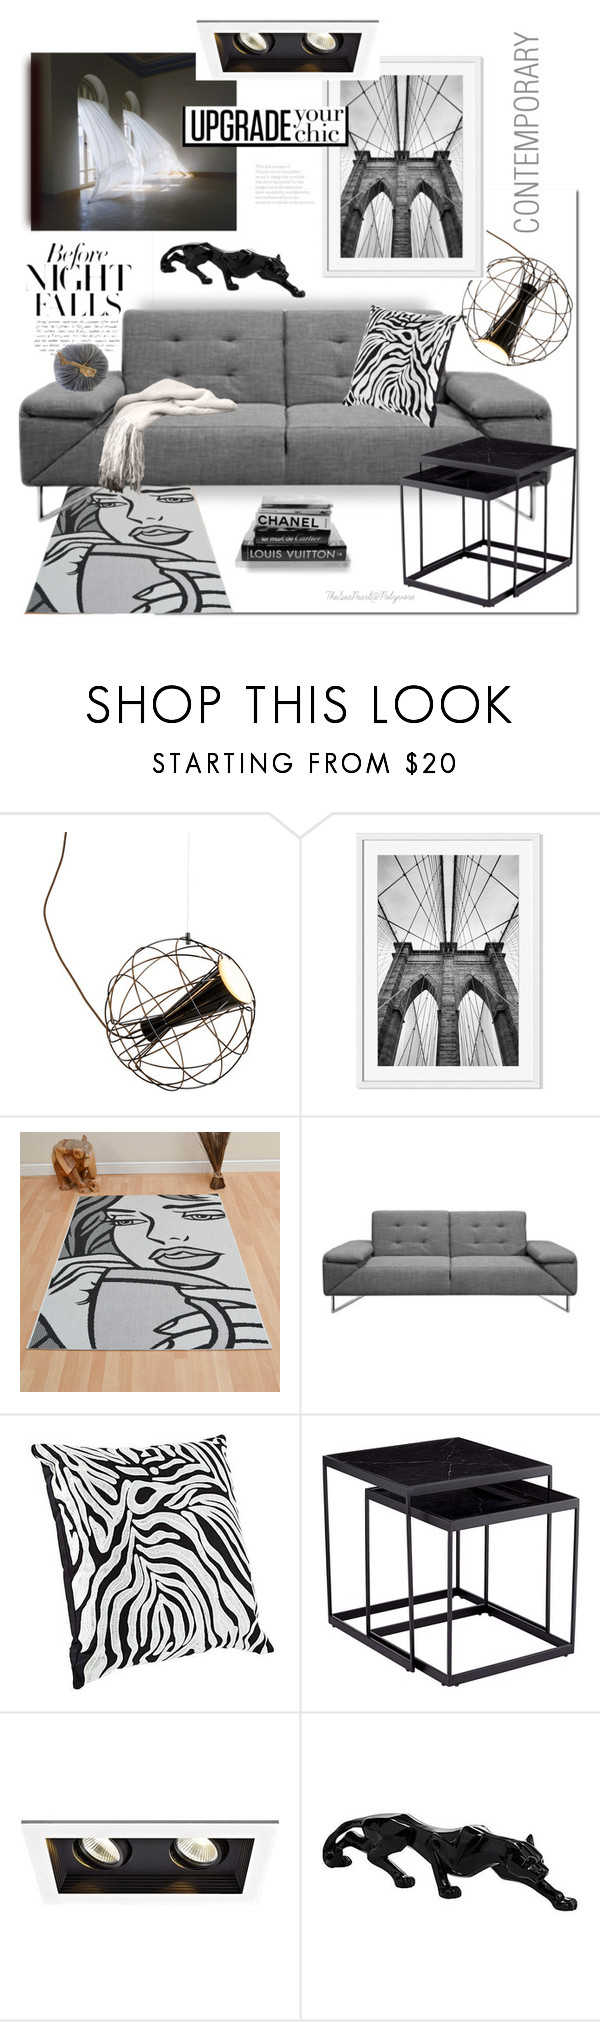 """""""Before Night Falls"""" by theseapearl ❤ liked on Polyvore featuring interior, interiors, interior design, home, home decor, interior decorating, WAC Lighting, contemporary, livingroom and chic"""